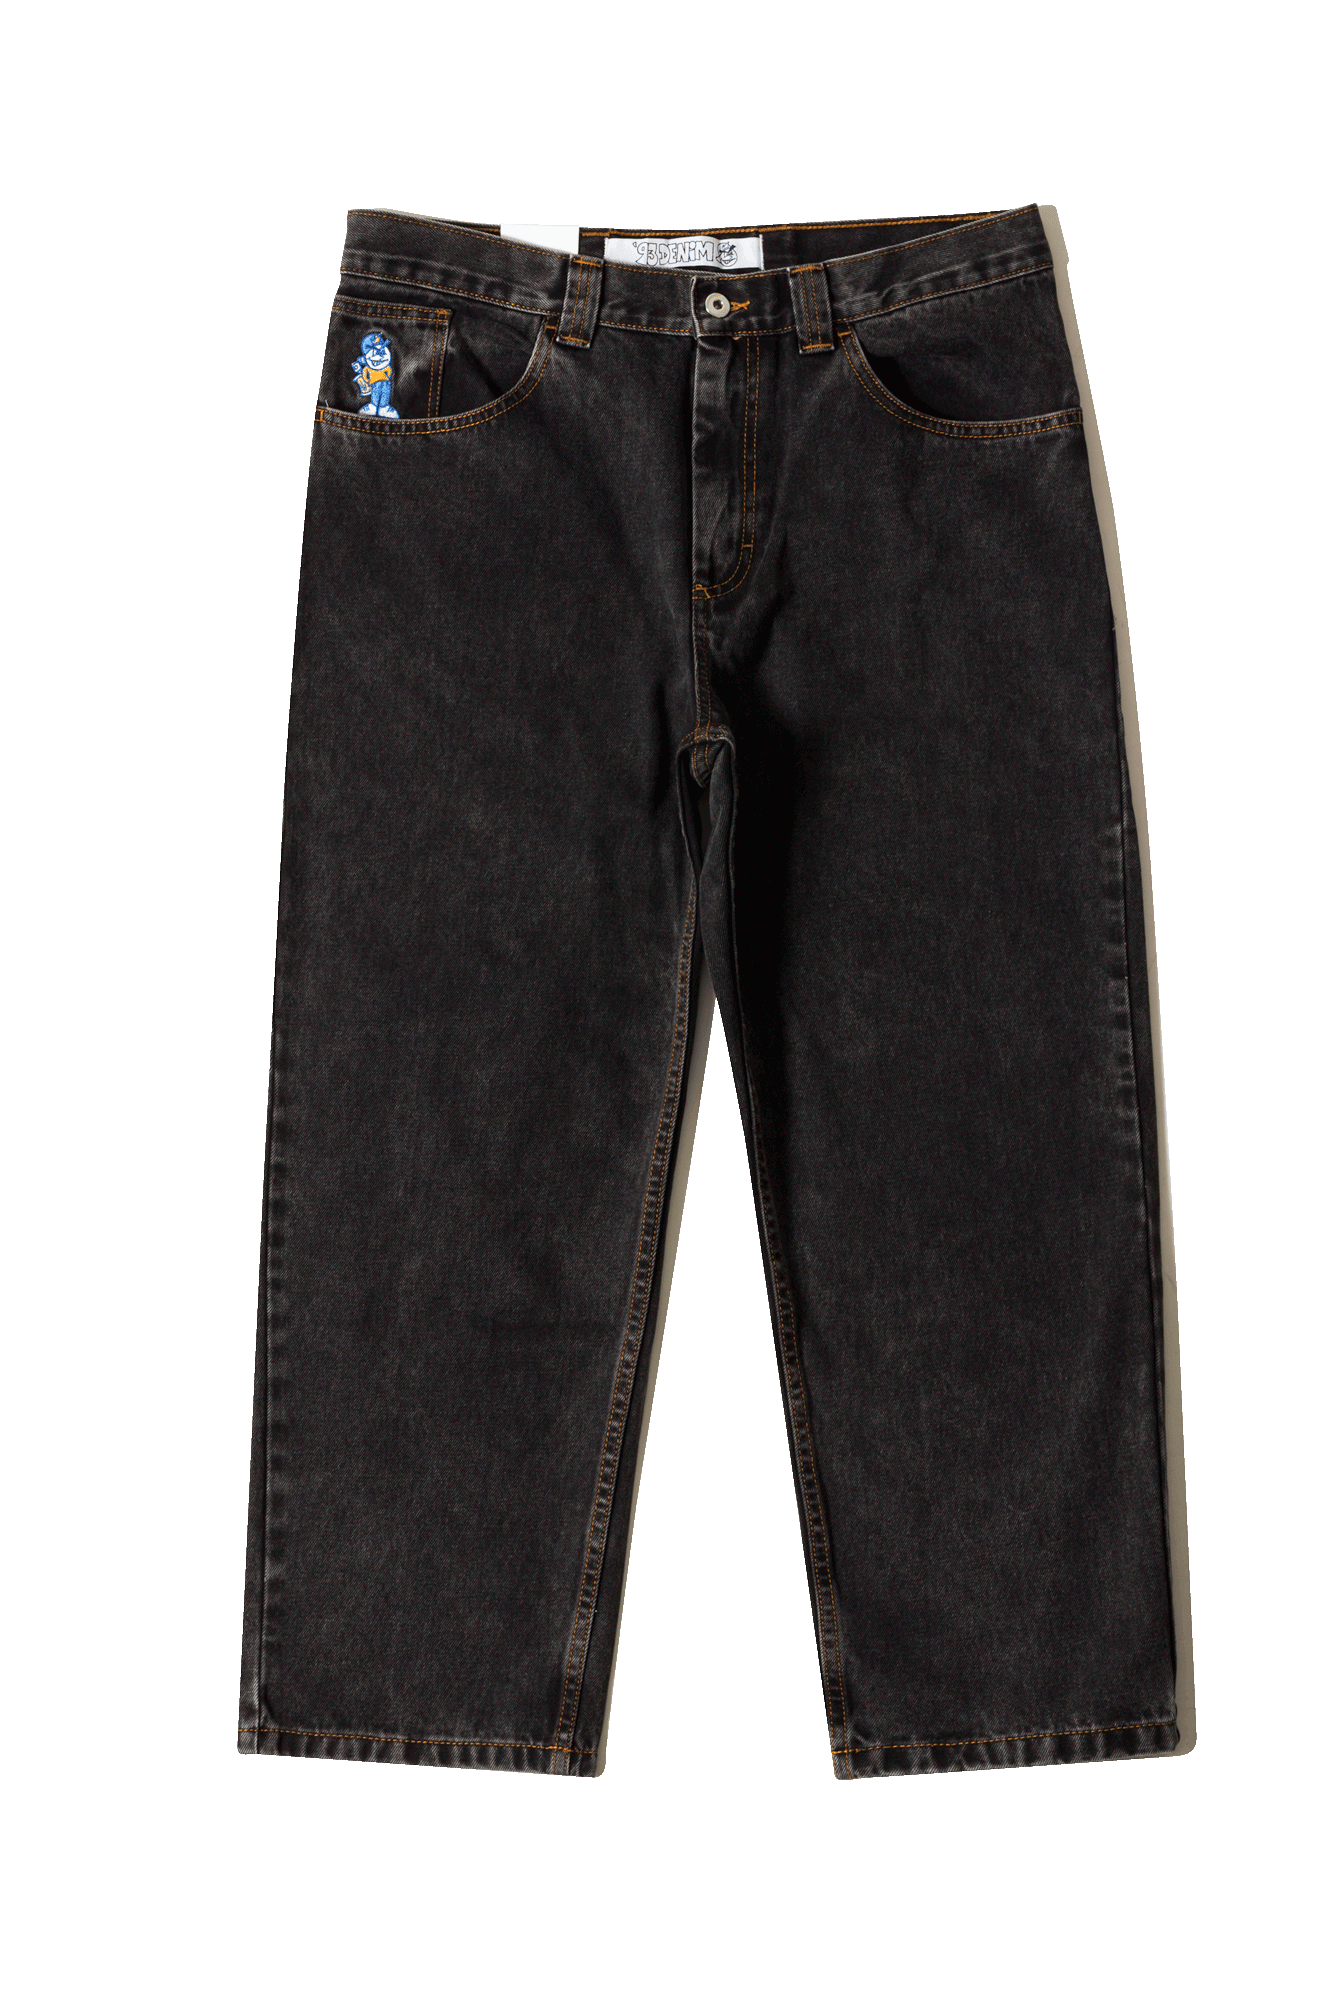 Polar Jeans '93 Denim Nero 93DENIM#000#BLACK#28 - One Block Down